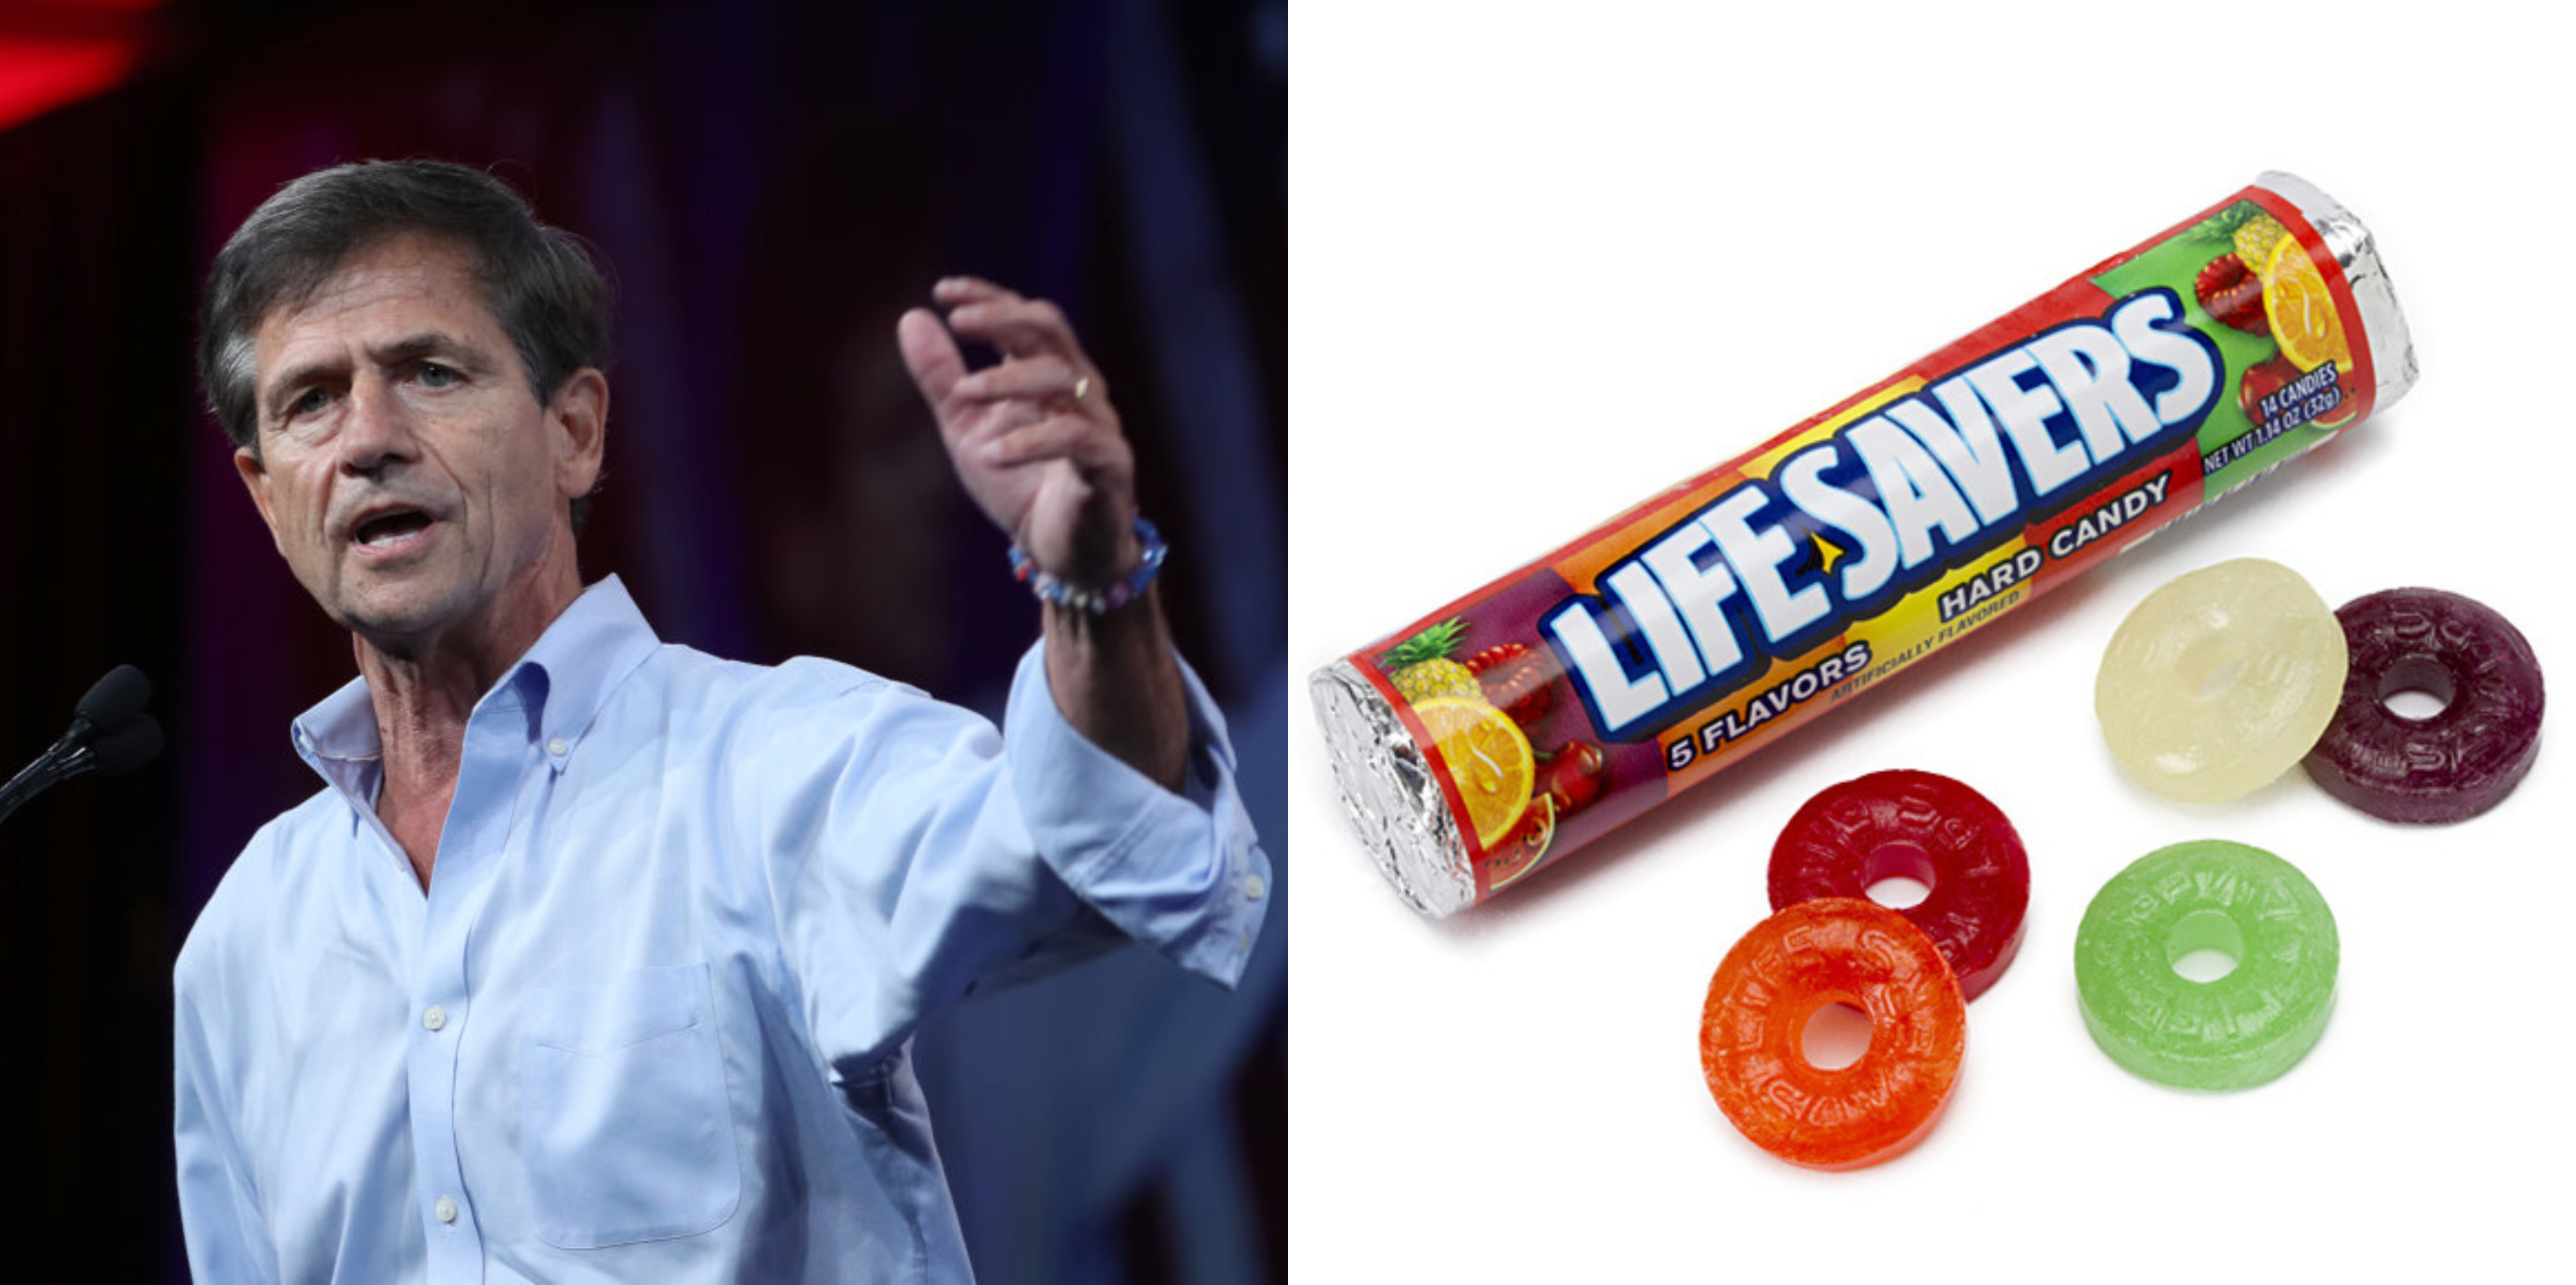 Joe Sestak – Lifesavers